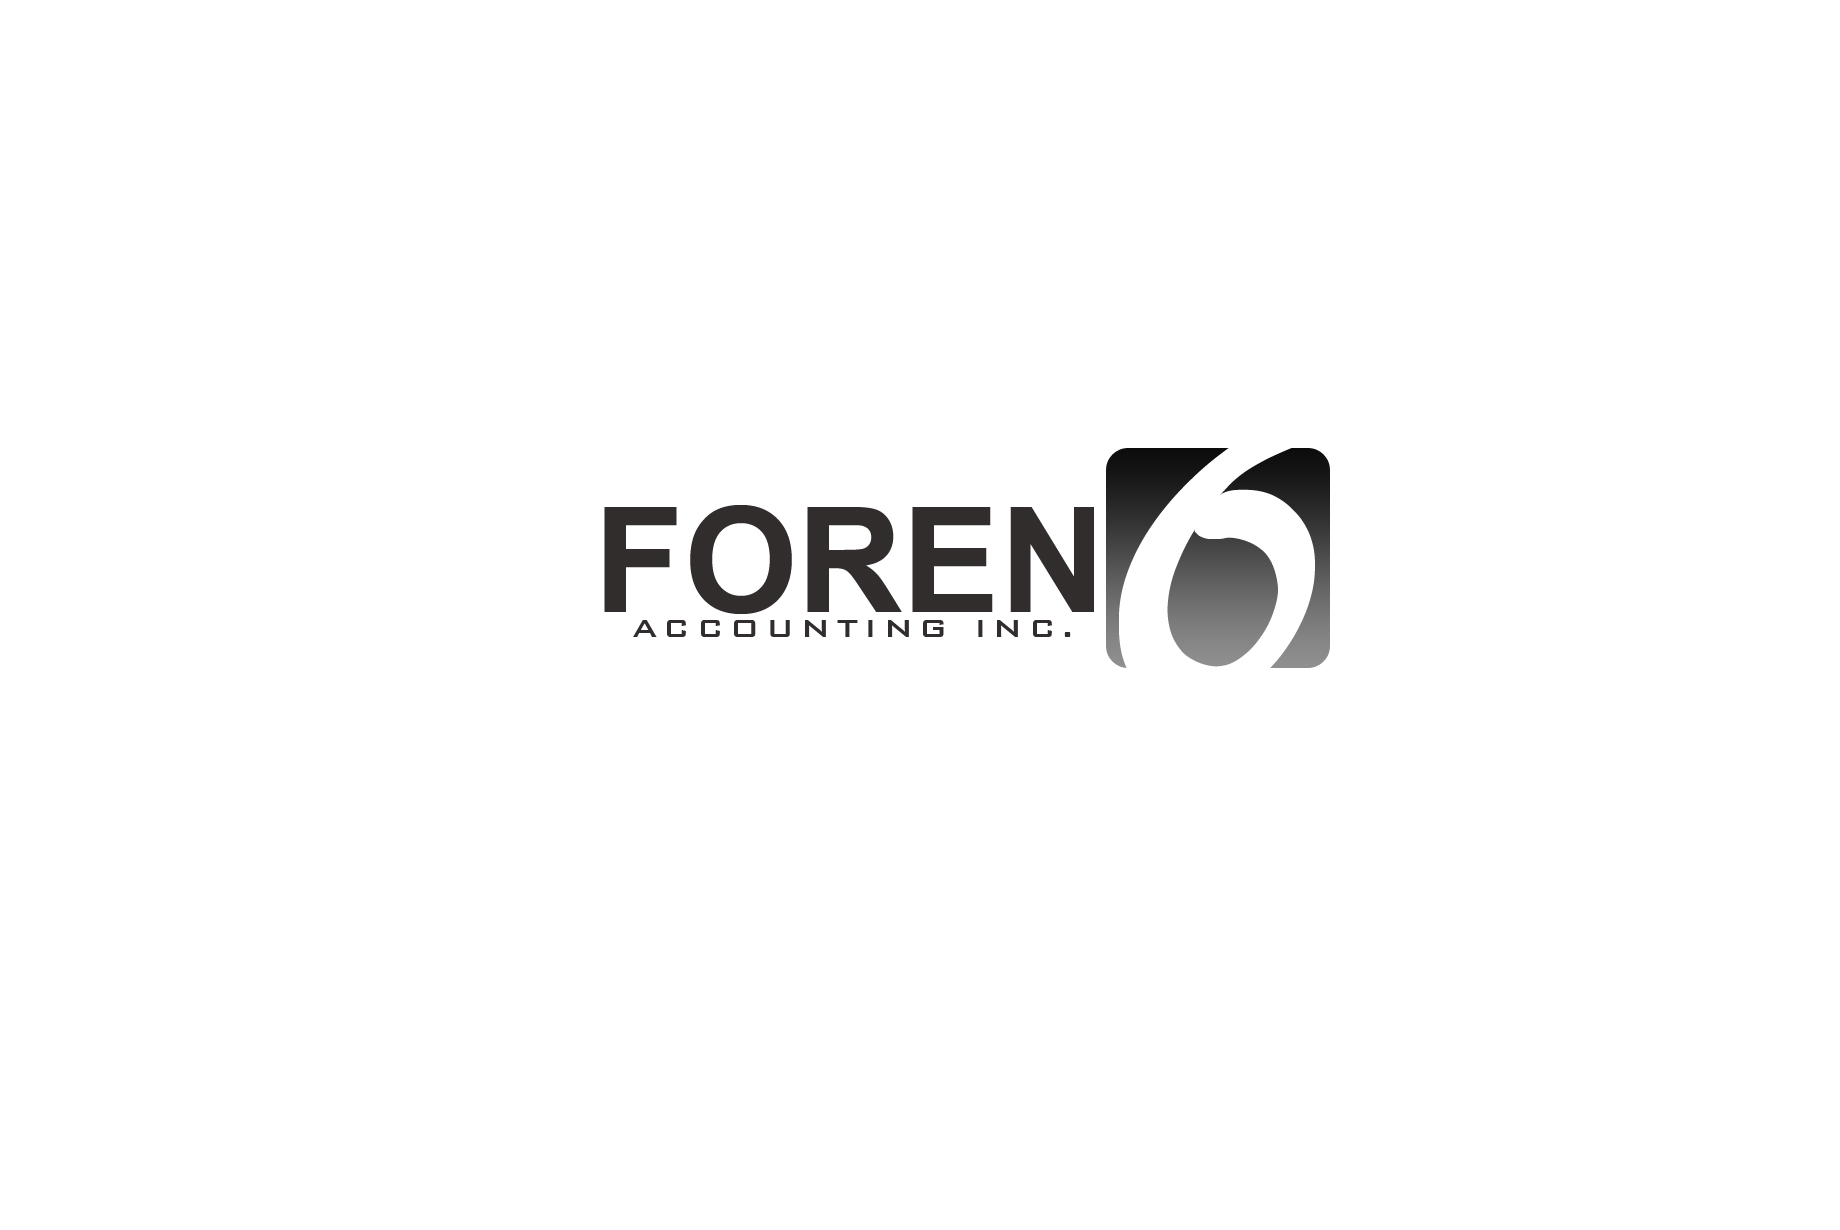 Logo Design by Jan Chua - Entry No. 56 in the Logo Design Contest FORENSIX ACCOUNTING INC. Logo Design.